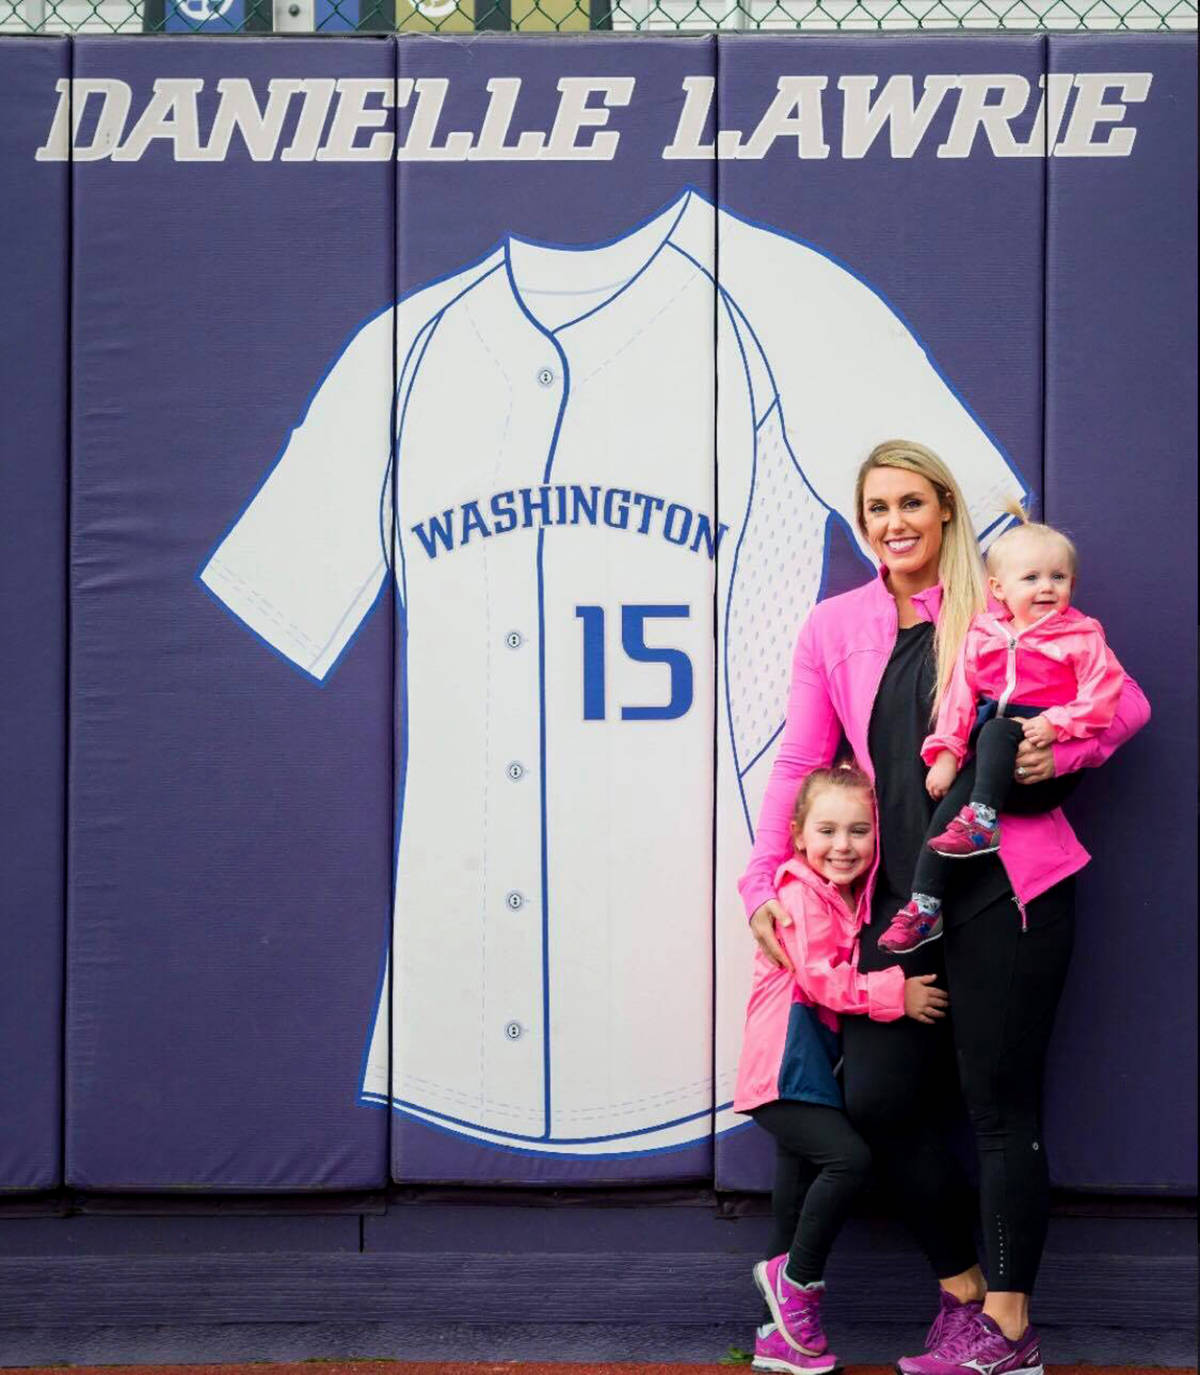 Danielle Lawrie-Locke poses with her daughters, Madison and Audrey at Husky Stadium where her No. 15 jersey was retired by the University of Washington in 2014. Lawrie-Locke is attempting a comeback with the Canadian national team program.                                Photo courtesy of Morgan Henry Photography